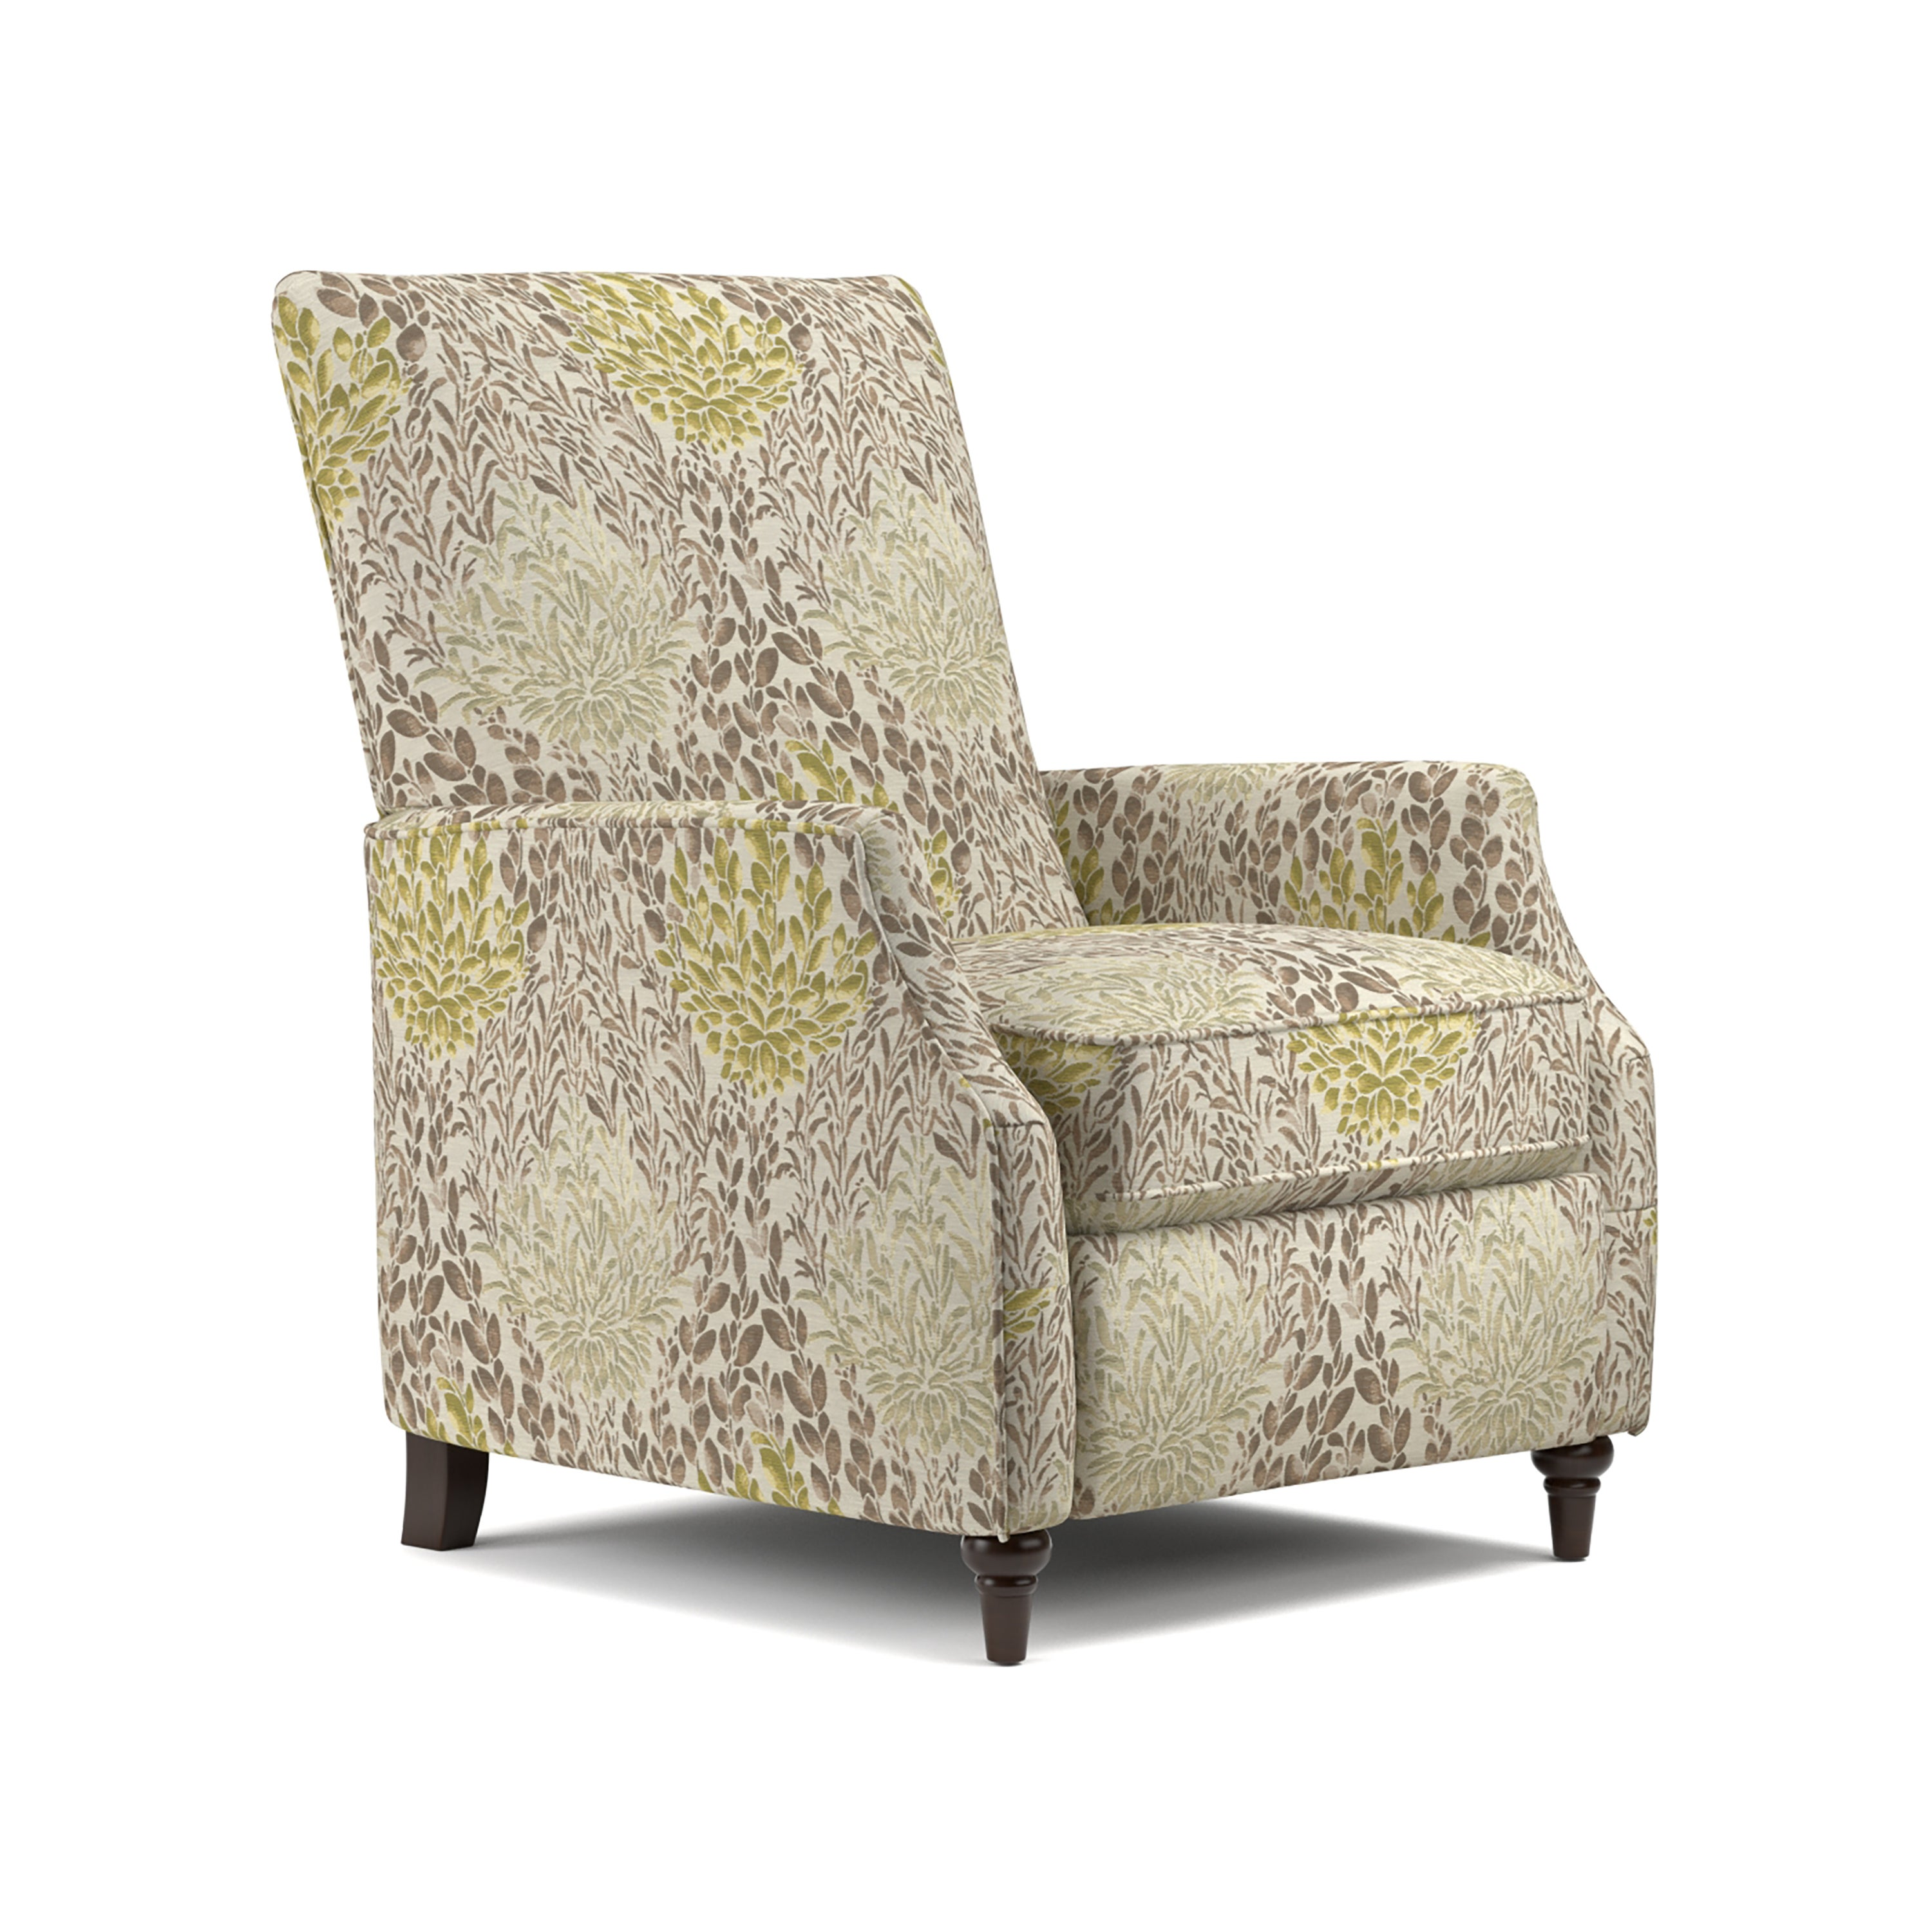 Charmant Shop ProLounger Yellow Multi Floral Push Back Recliner Chair   Free  Shipping Today   Overstock.com   16753453